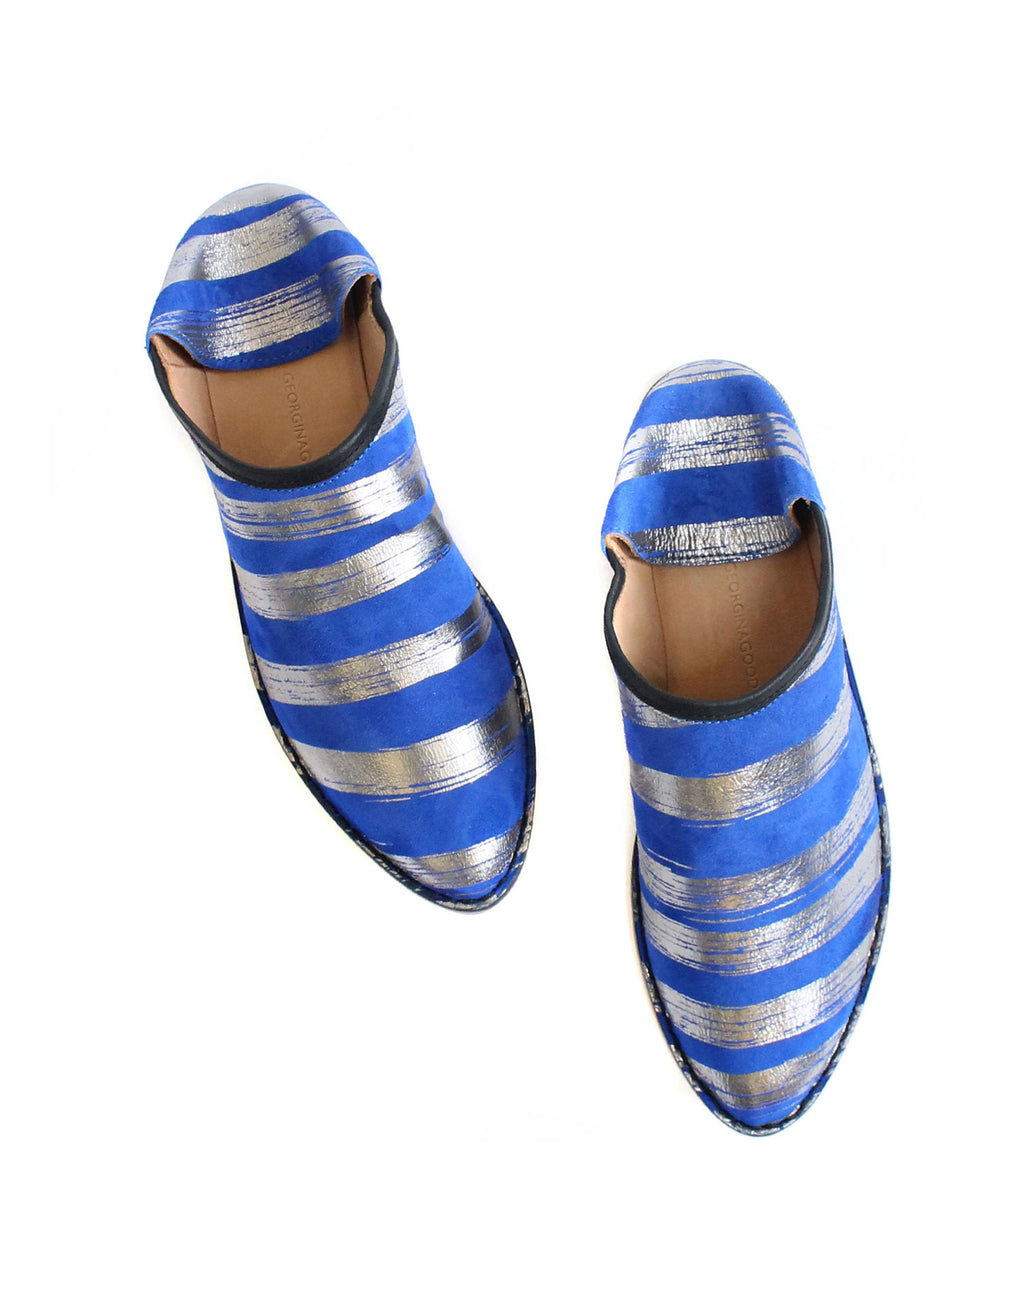 designer shoe samples for sale, the slipper shoe, the slip on shoe by Georgina Goodman, azure blue and silver brushstroke stripes from original designer artwork, designed in London, slipper style, London style, comfy feet, style for any age